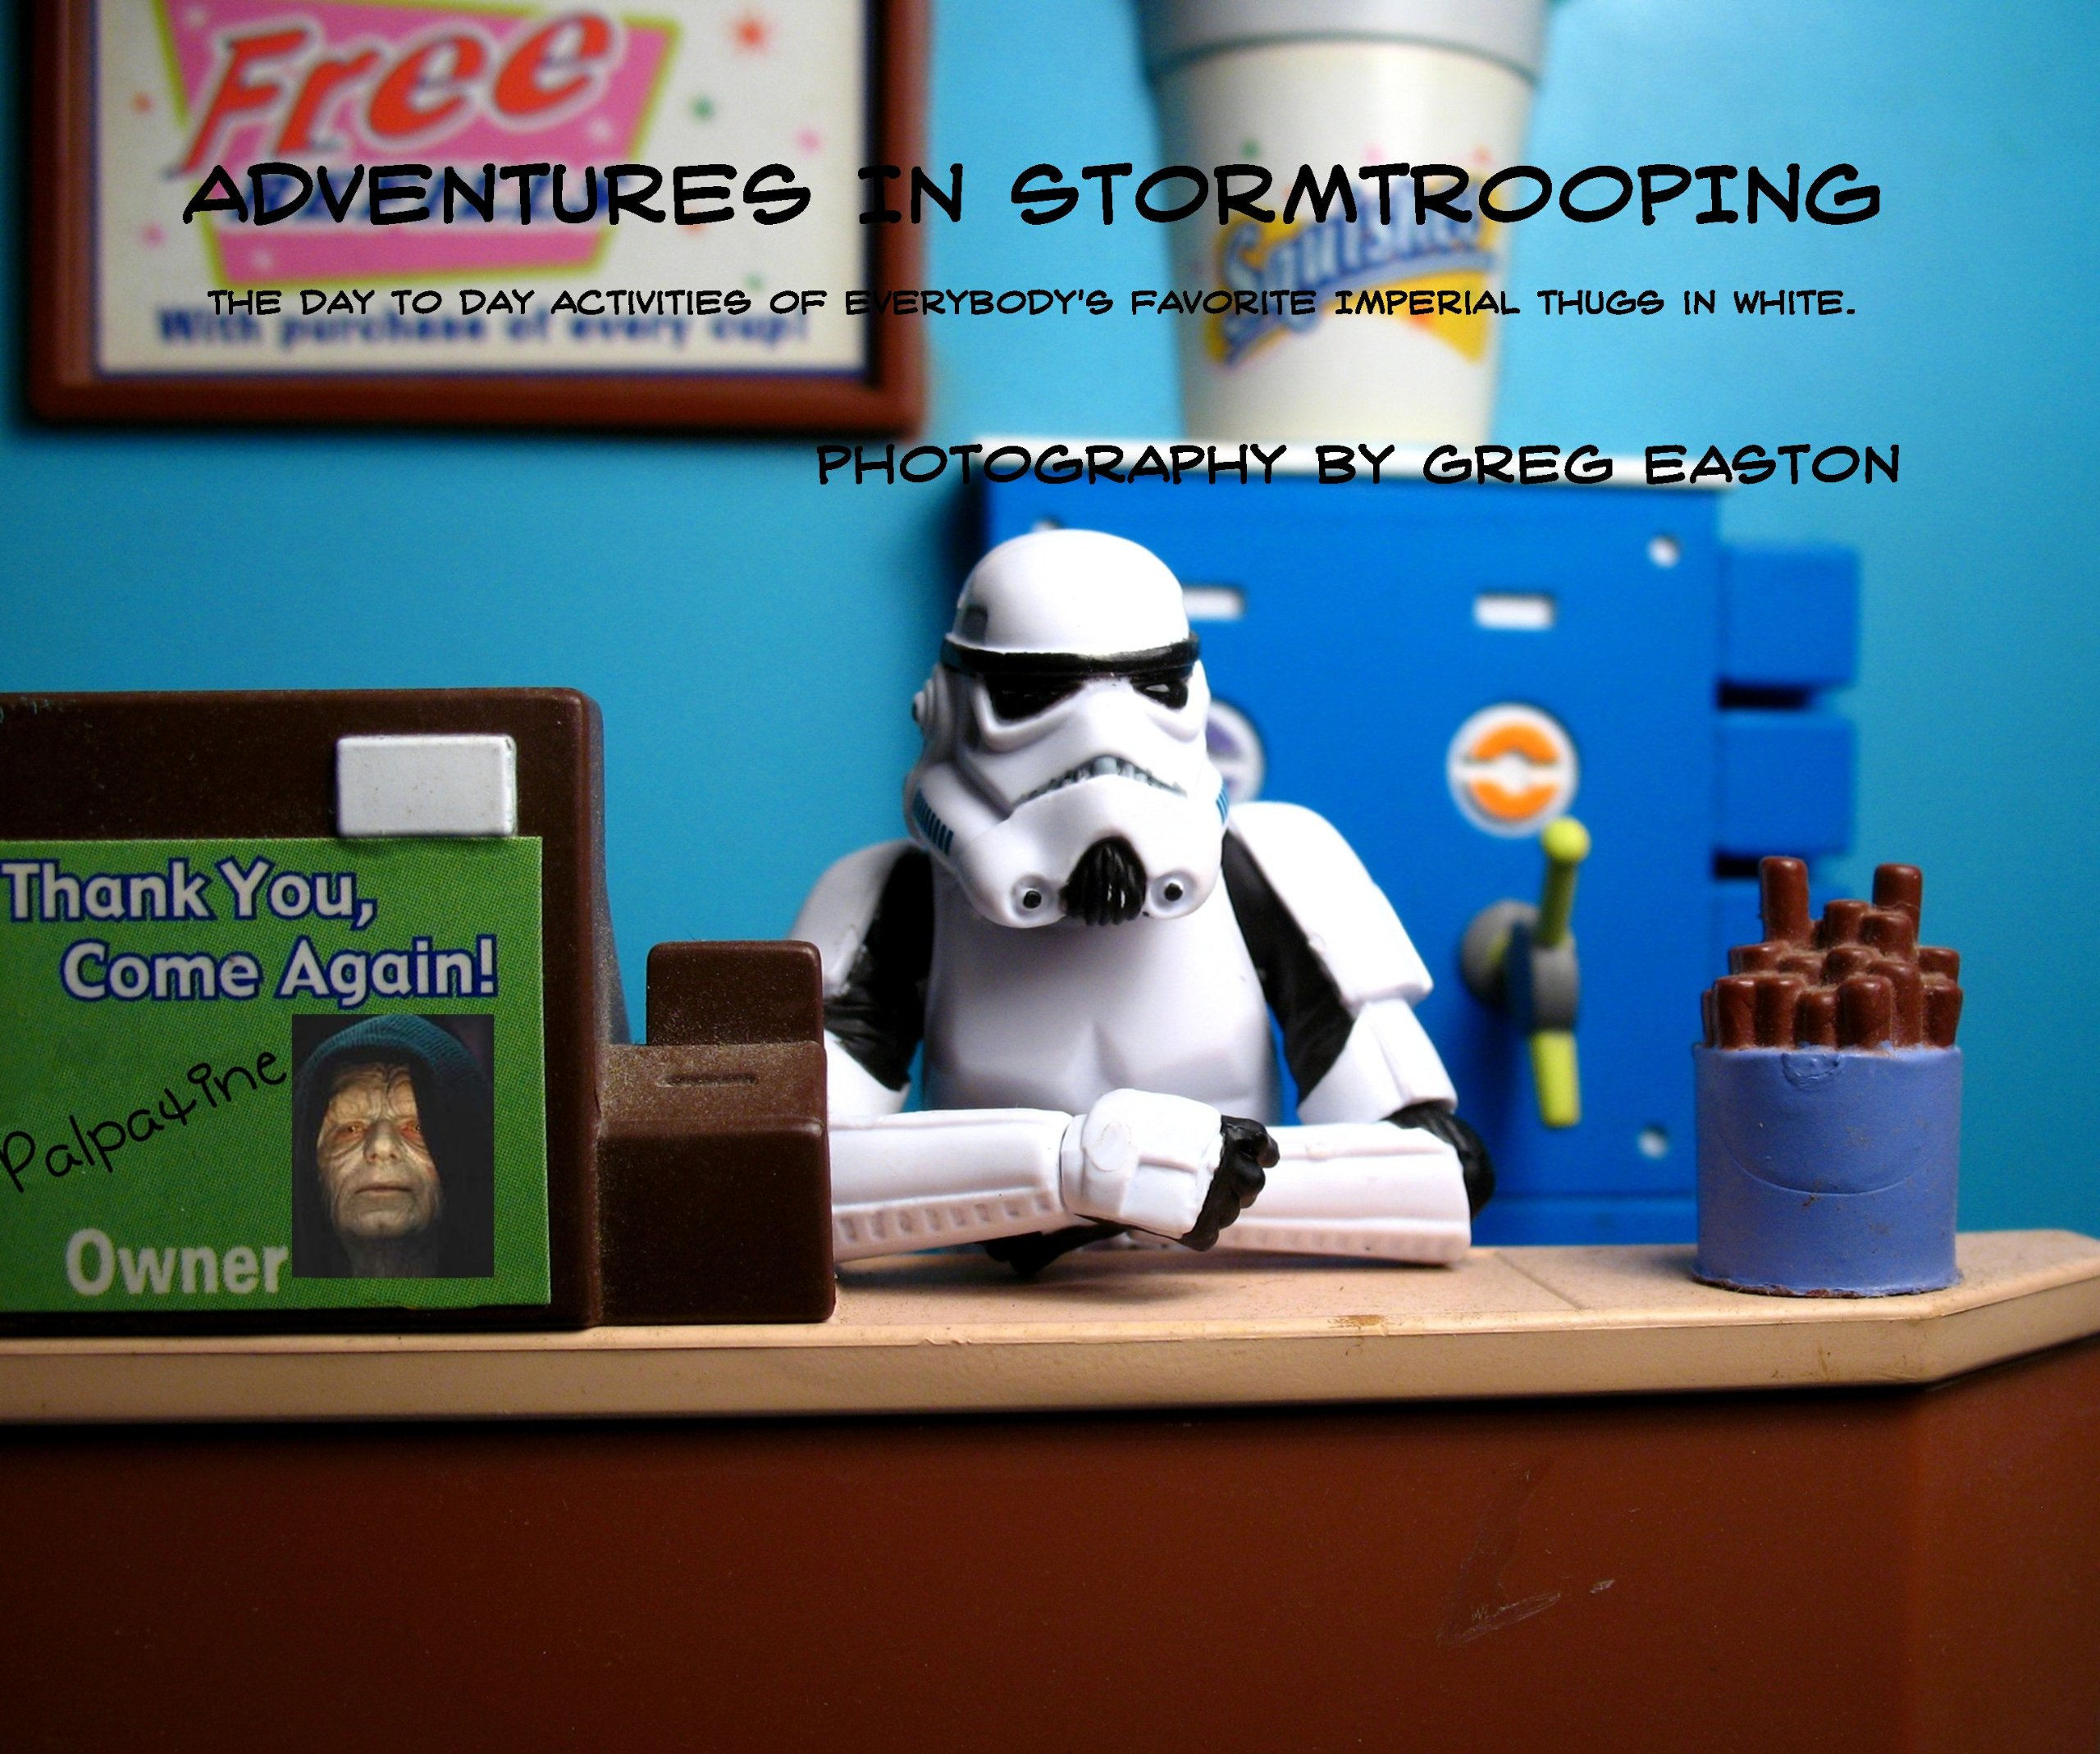 Adventures in Stormtrooping (Photography by Greg Easton)